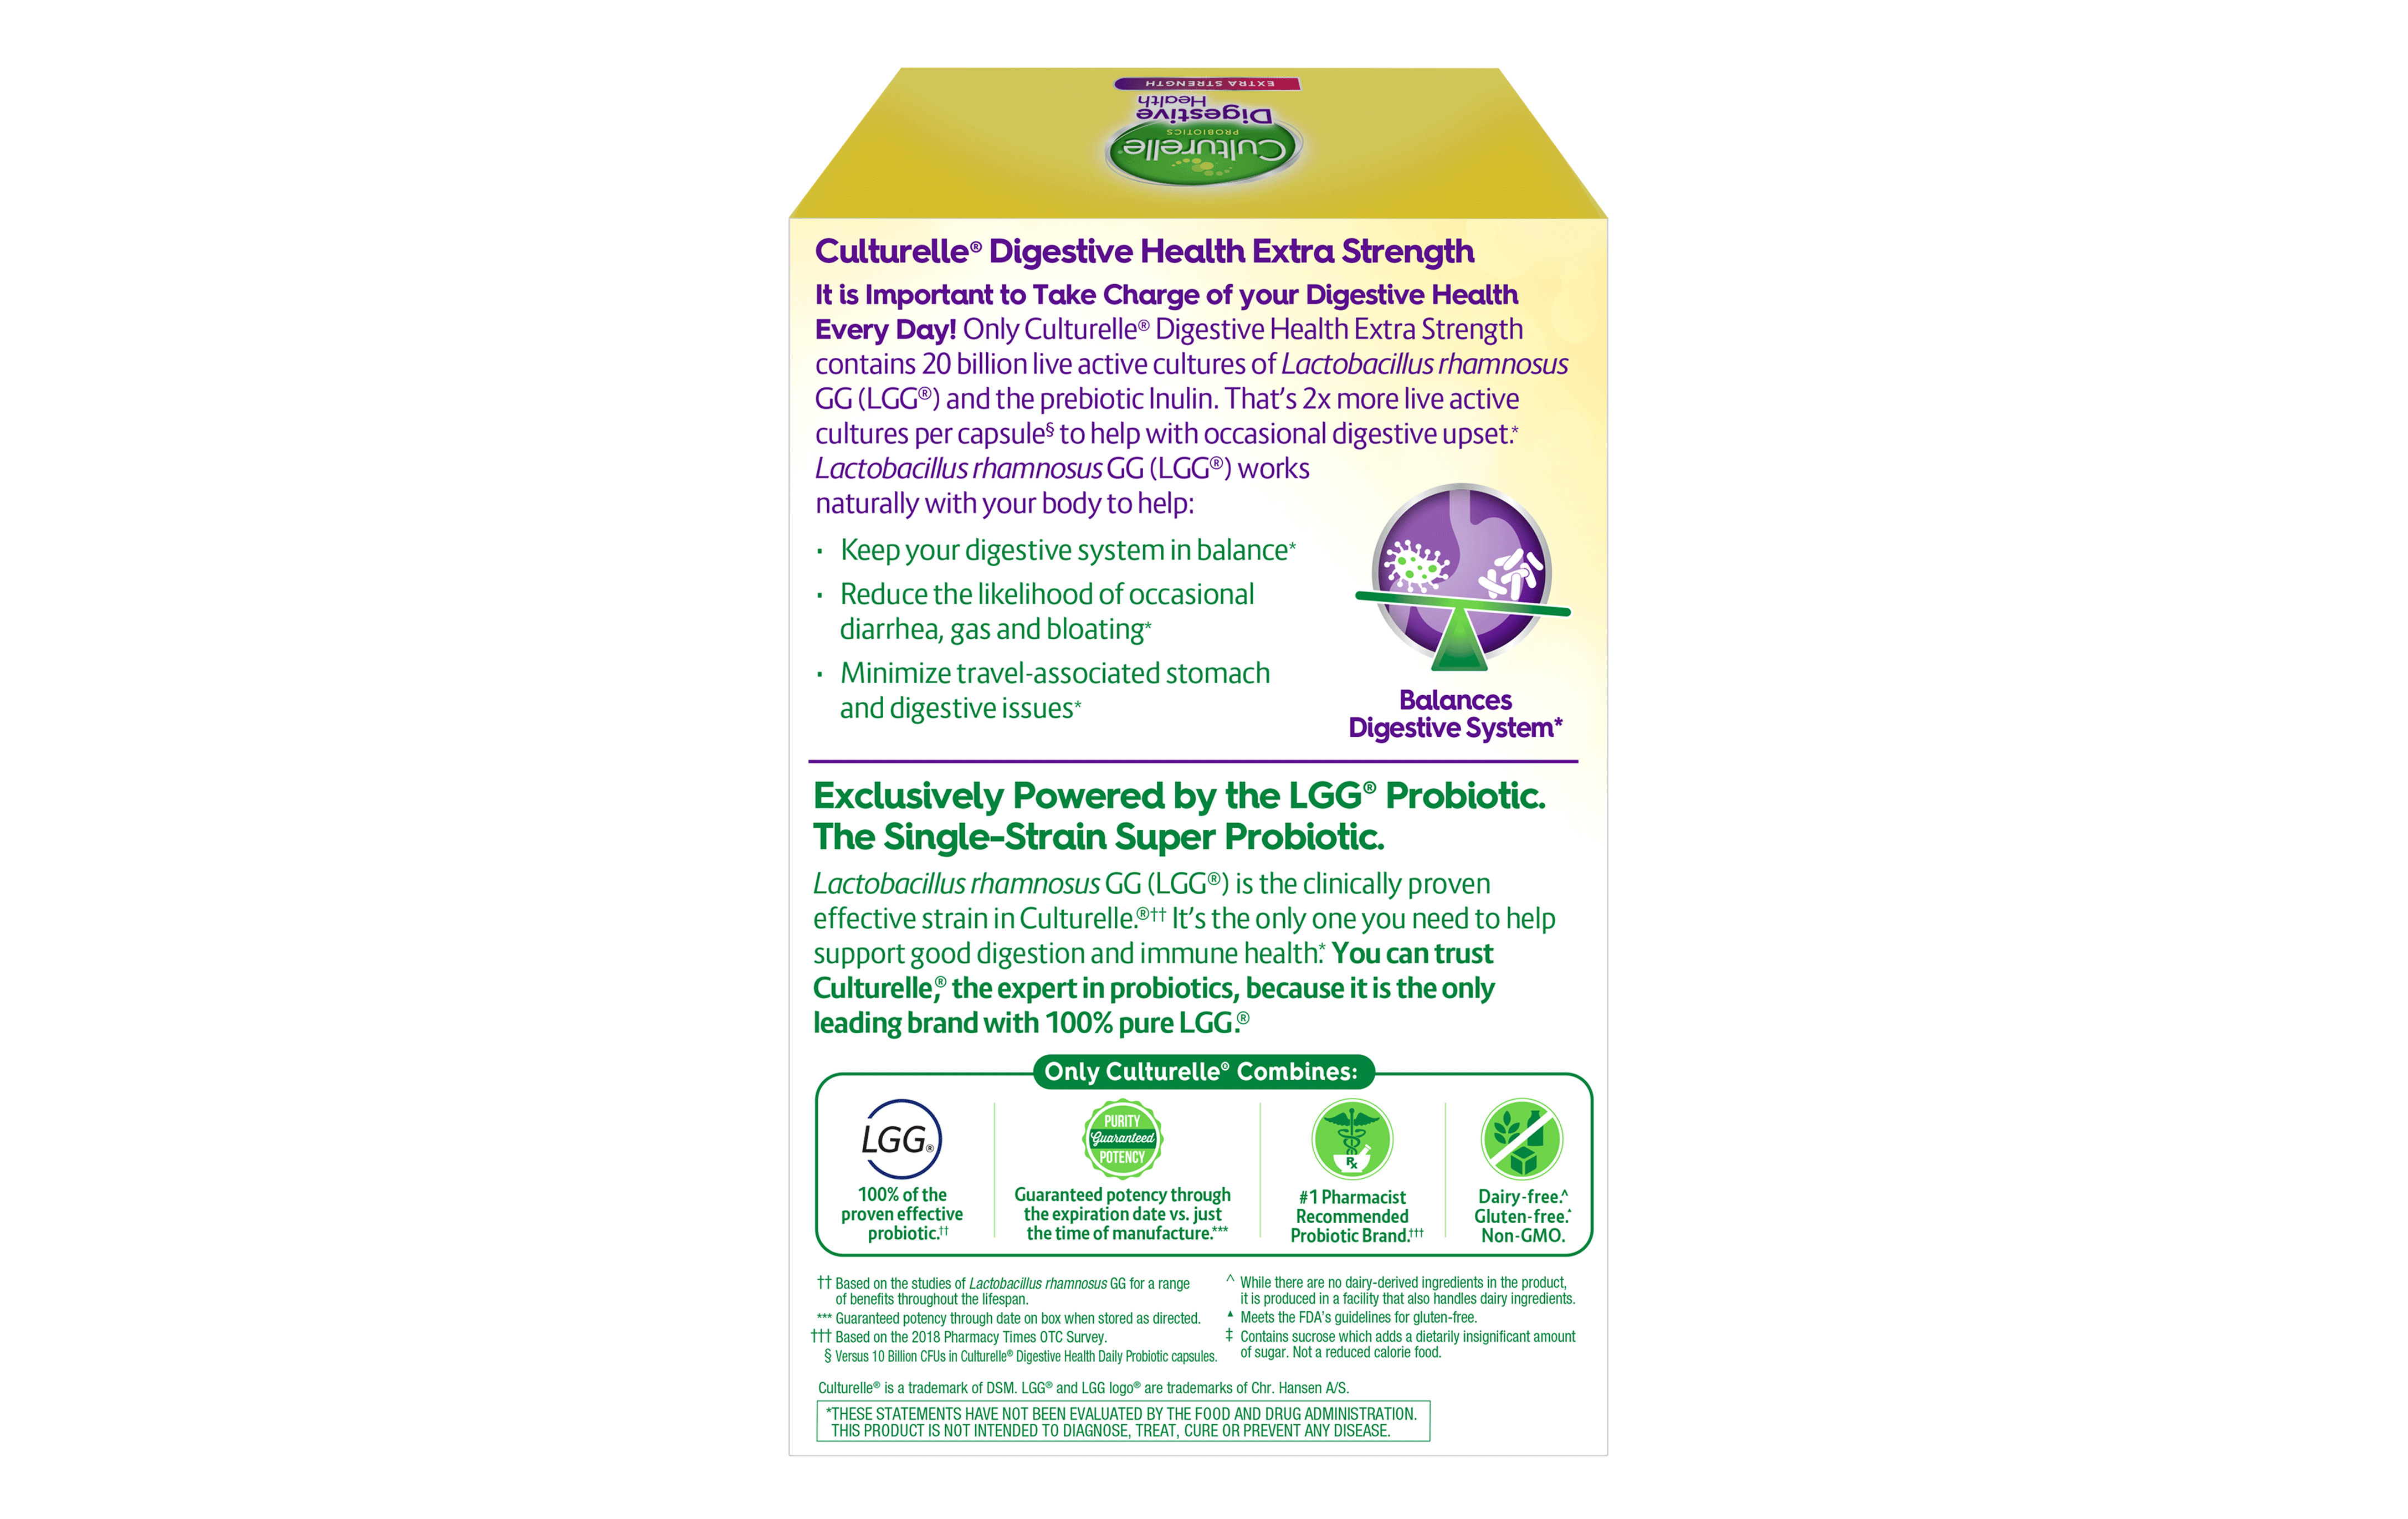 Benefits Of Probiotics Digestive Health Extra Strength Culturelle